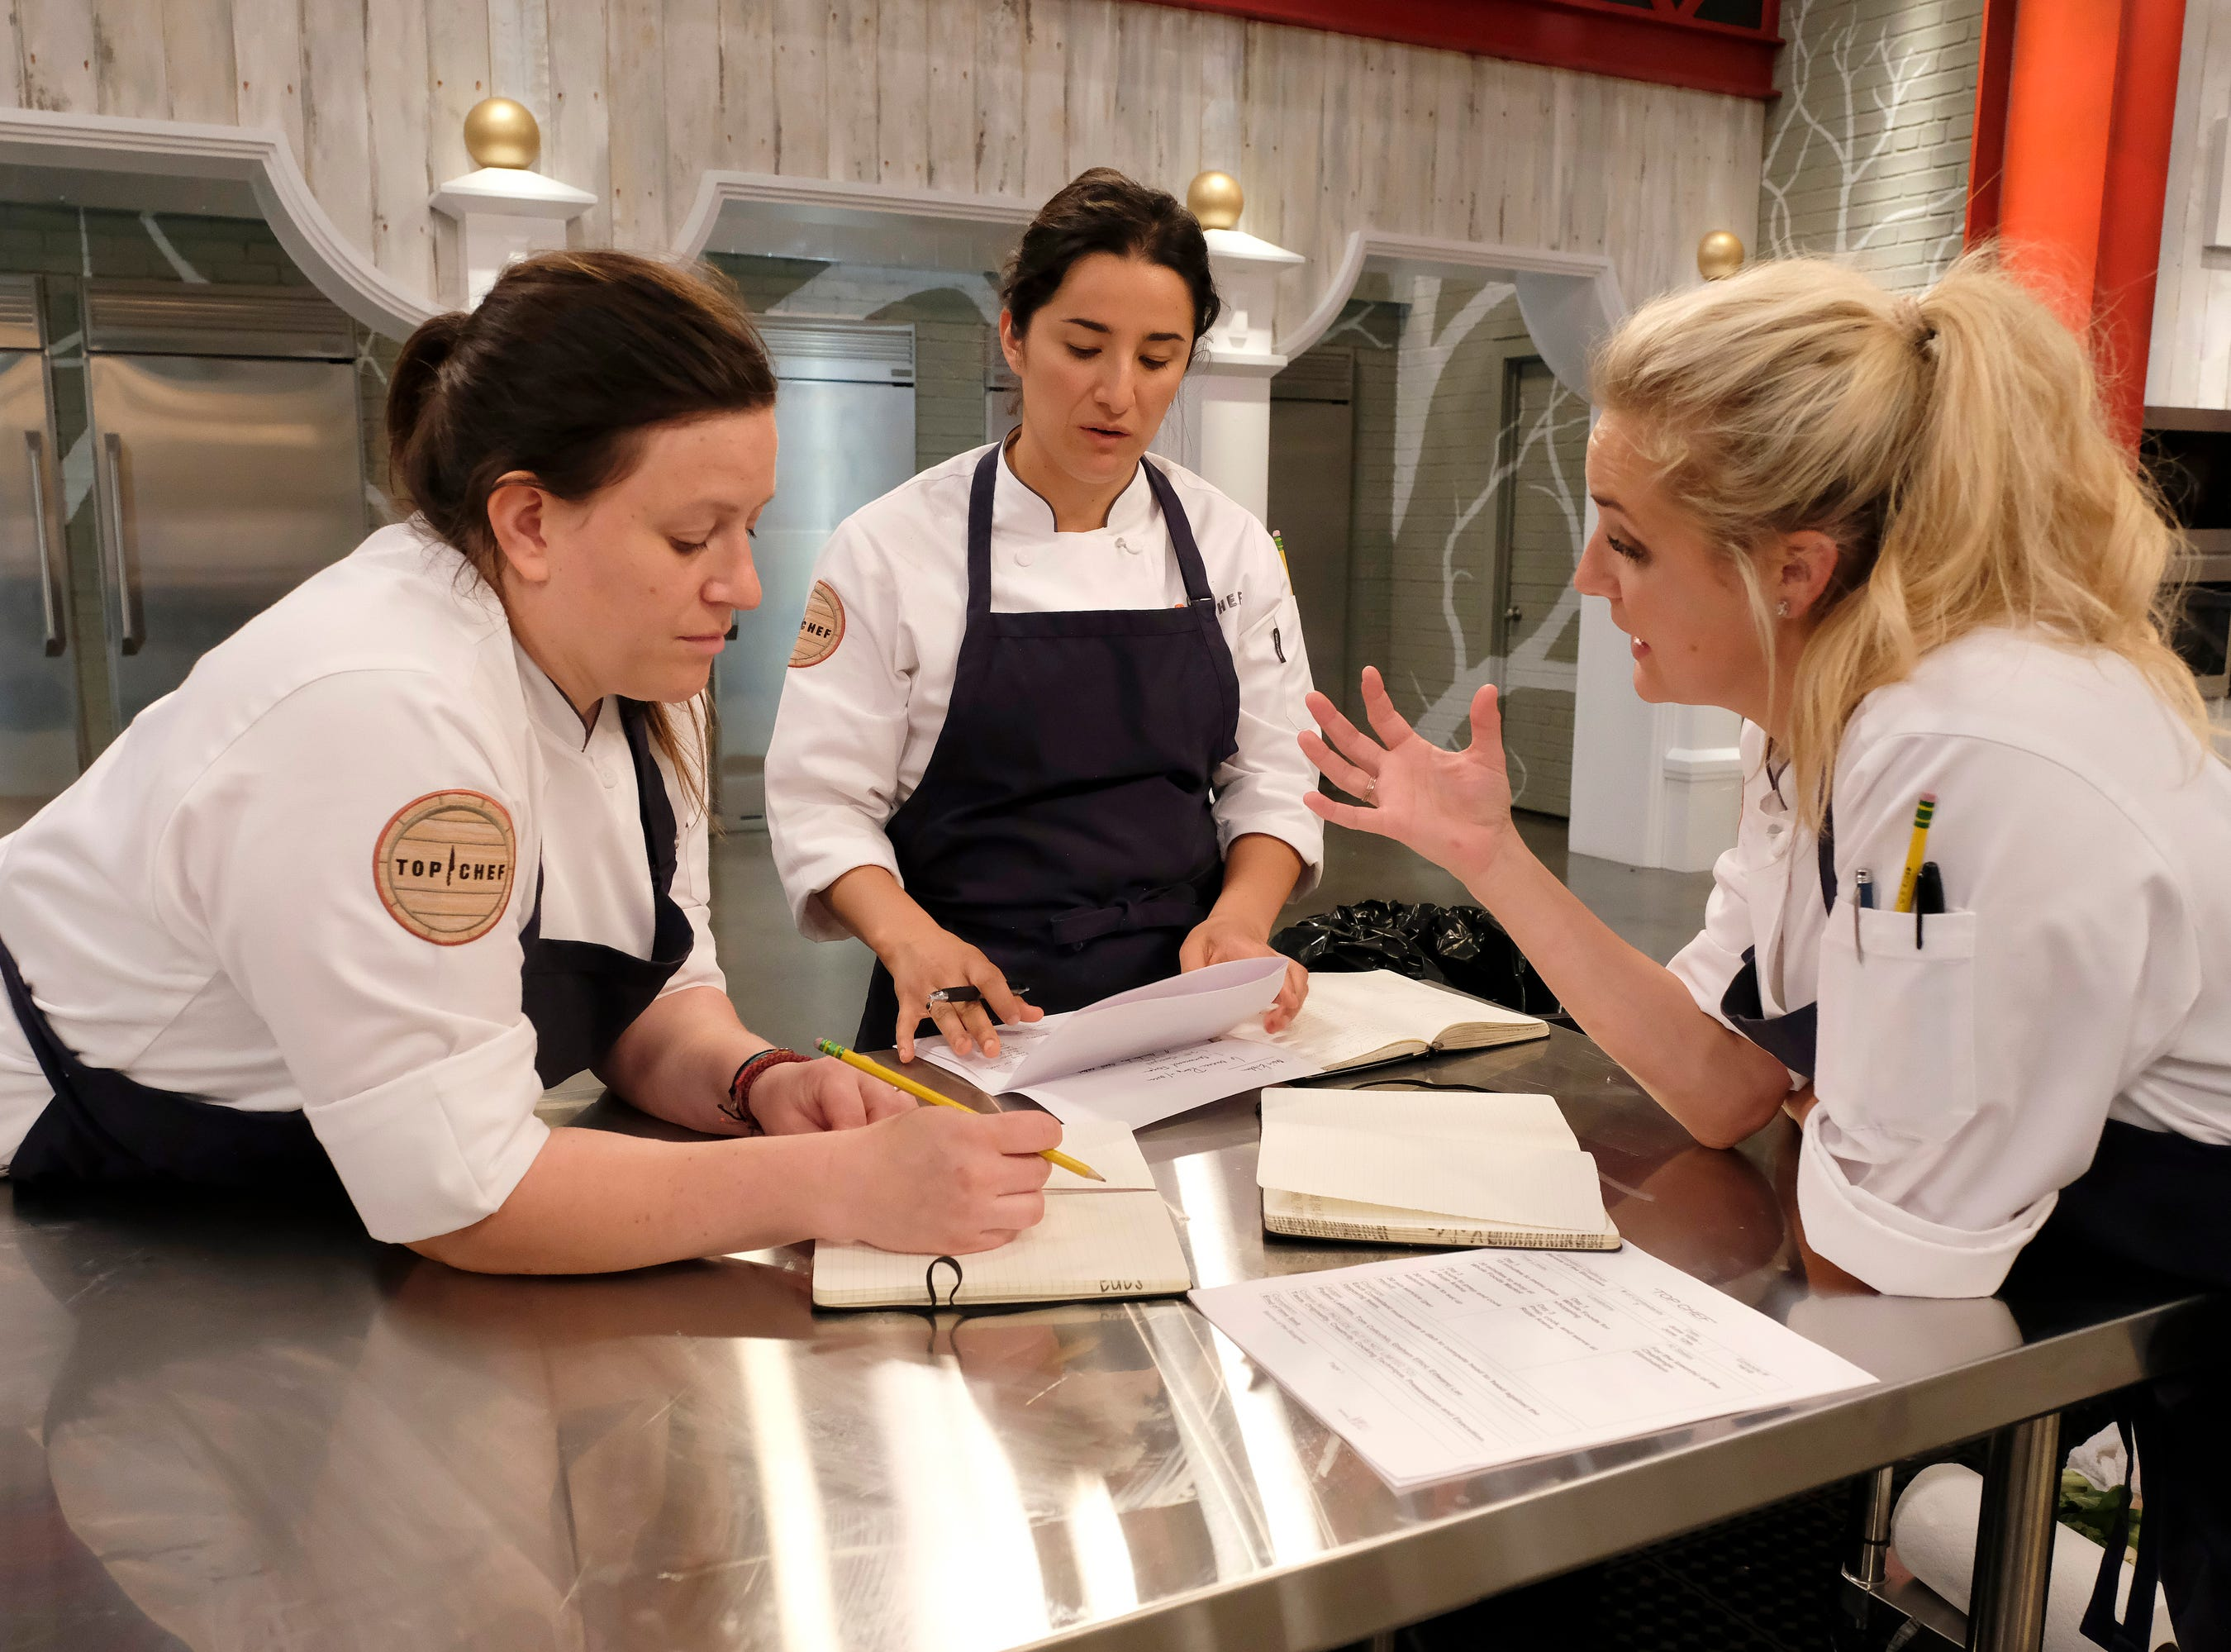 (From left to right): Contestants Sara Bradley, Michelle Minori and Kelsey Barnard on episode 10 of Bravo's 'Top Chef: Kentucky' season.